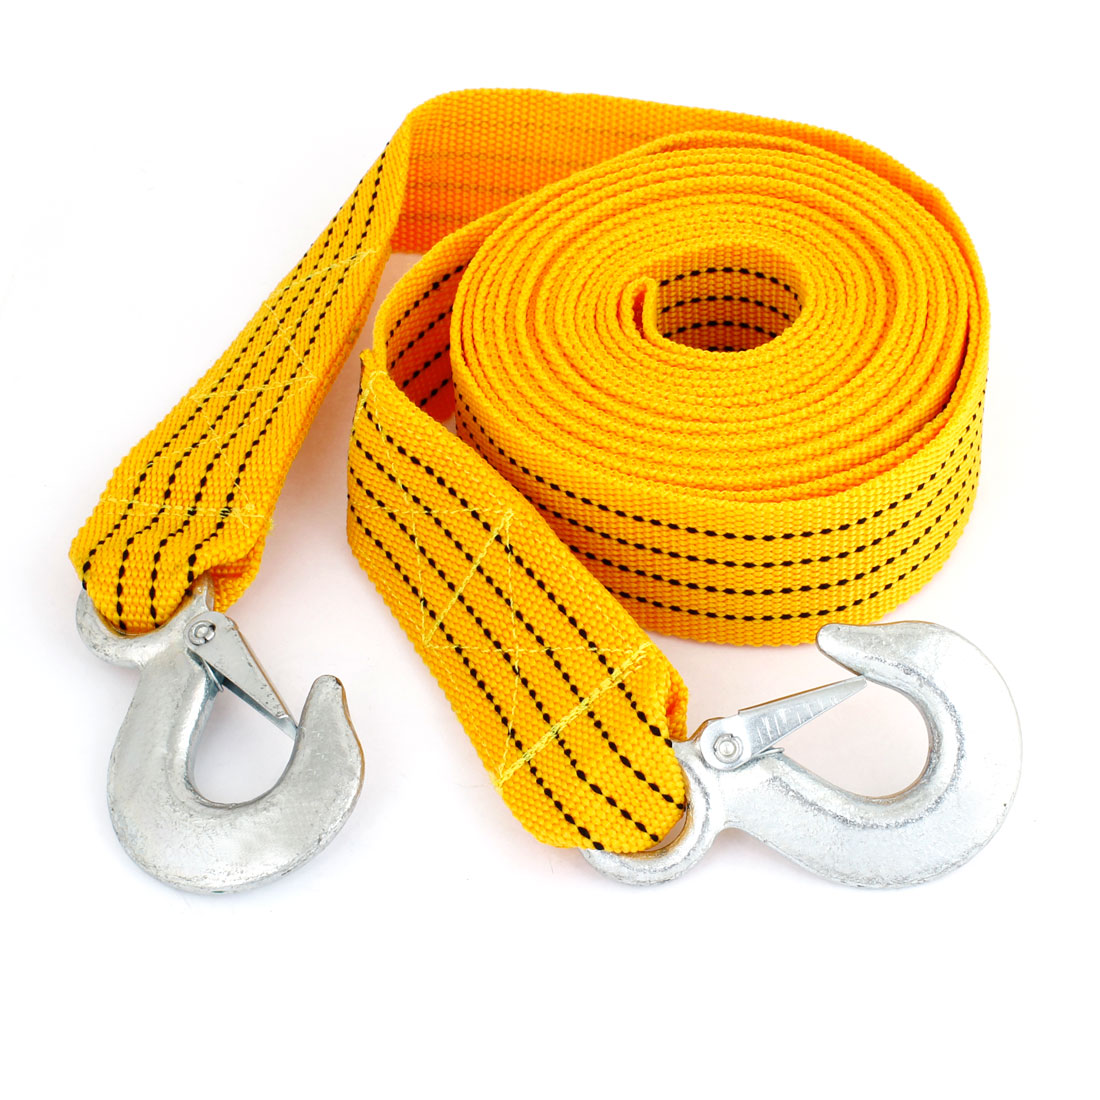 Auto Car Forged Hook Ends 5.5 Meters 3 Tons 47mm Width Towing Strap Belt by Unique Bargains